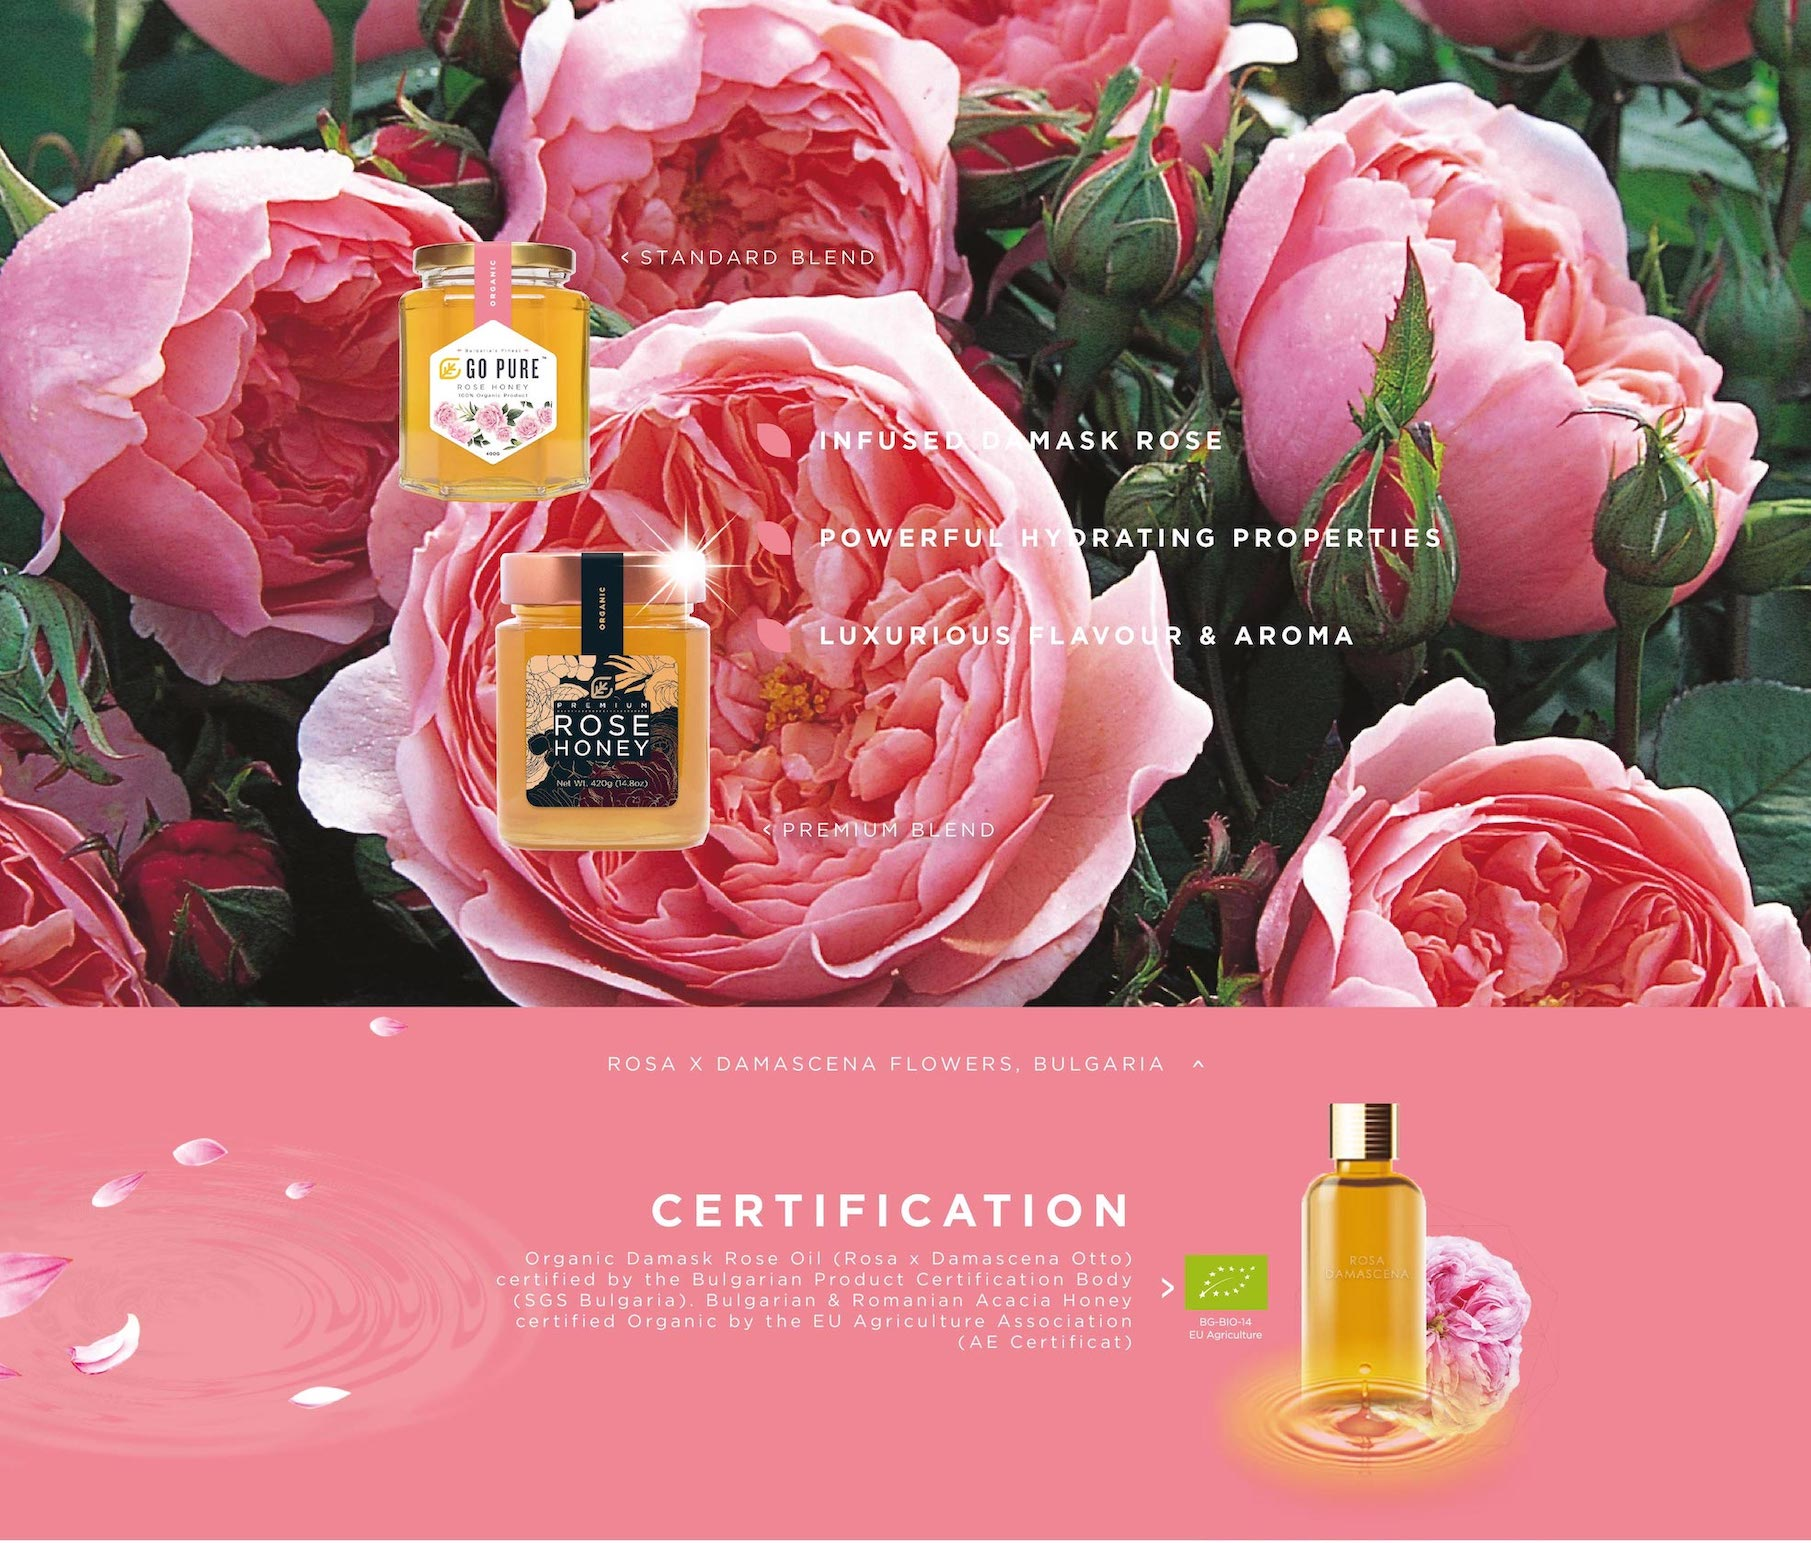 - Infused Damask Rose. - Powerful Hydrating Properties. - Luxurious Flavour & Aroma. Certification: Organic Damask Rose Oil (Rose X Damascena Otto) certified by the Bulgarian Product Certification Body (SGS Bulgaria). Bulgarian & Romanian Acacia Honey certified Organic by the EU Agriculture Association (AE Certificat)